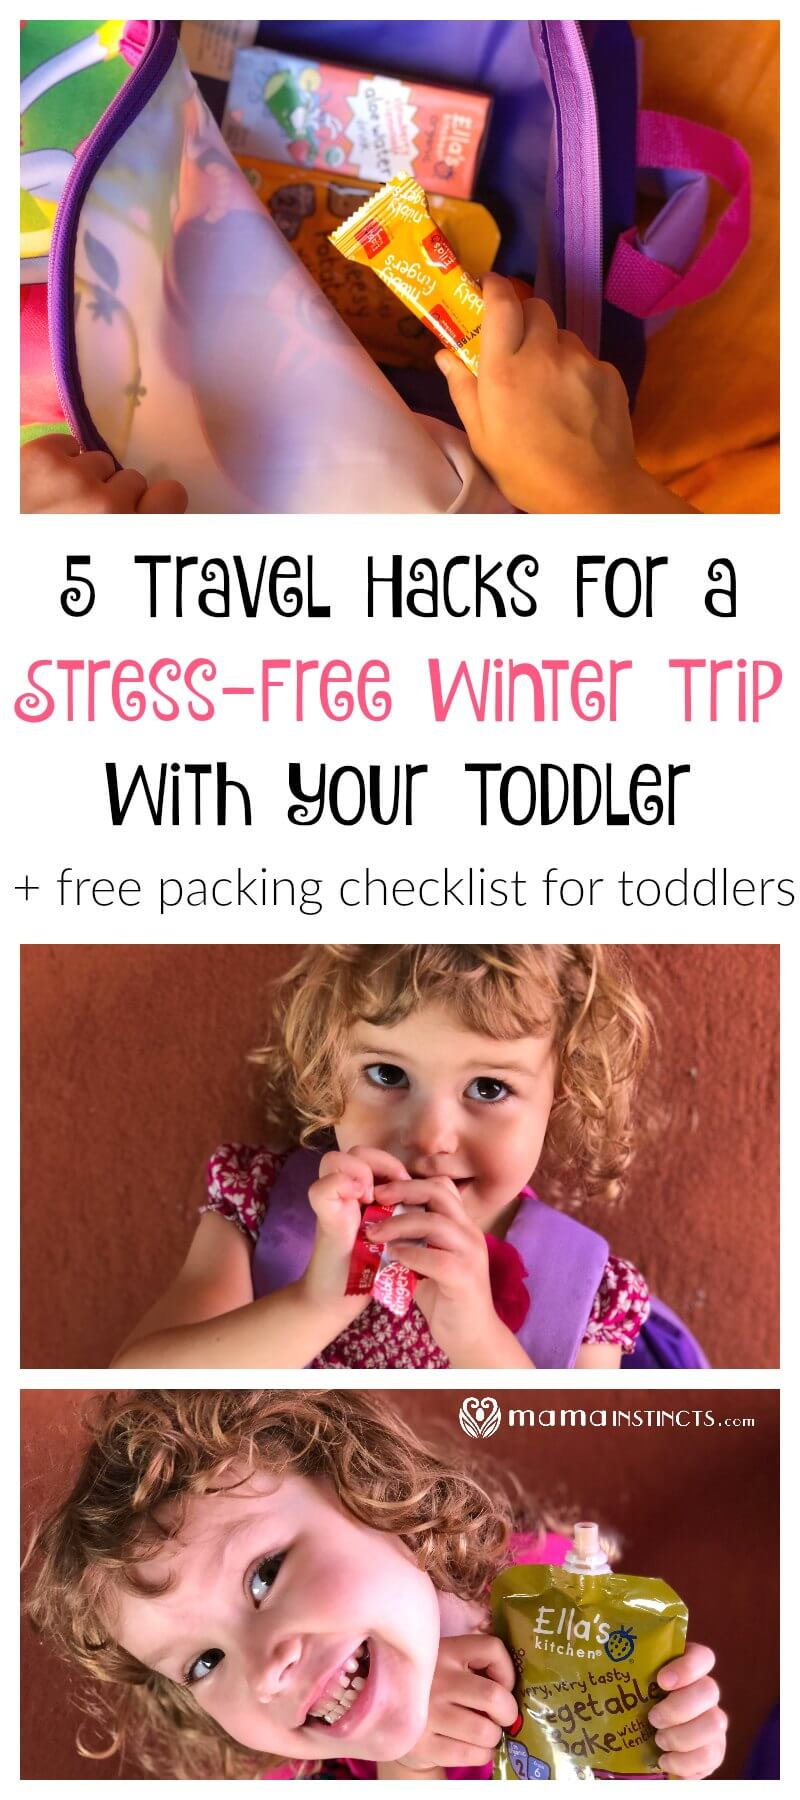 5 Travel Hacks For A Stress Free Winter Trip With Your Toddler